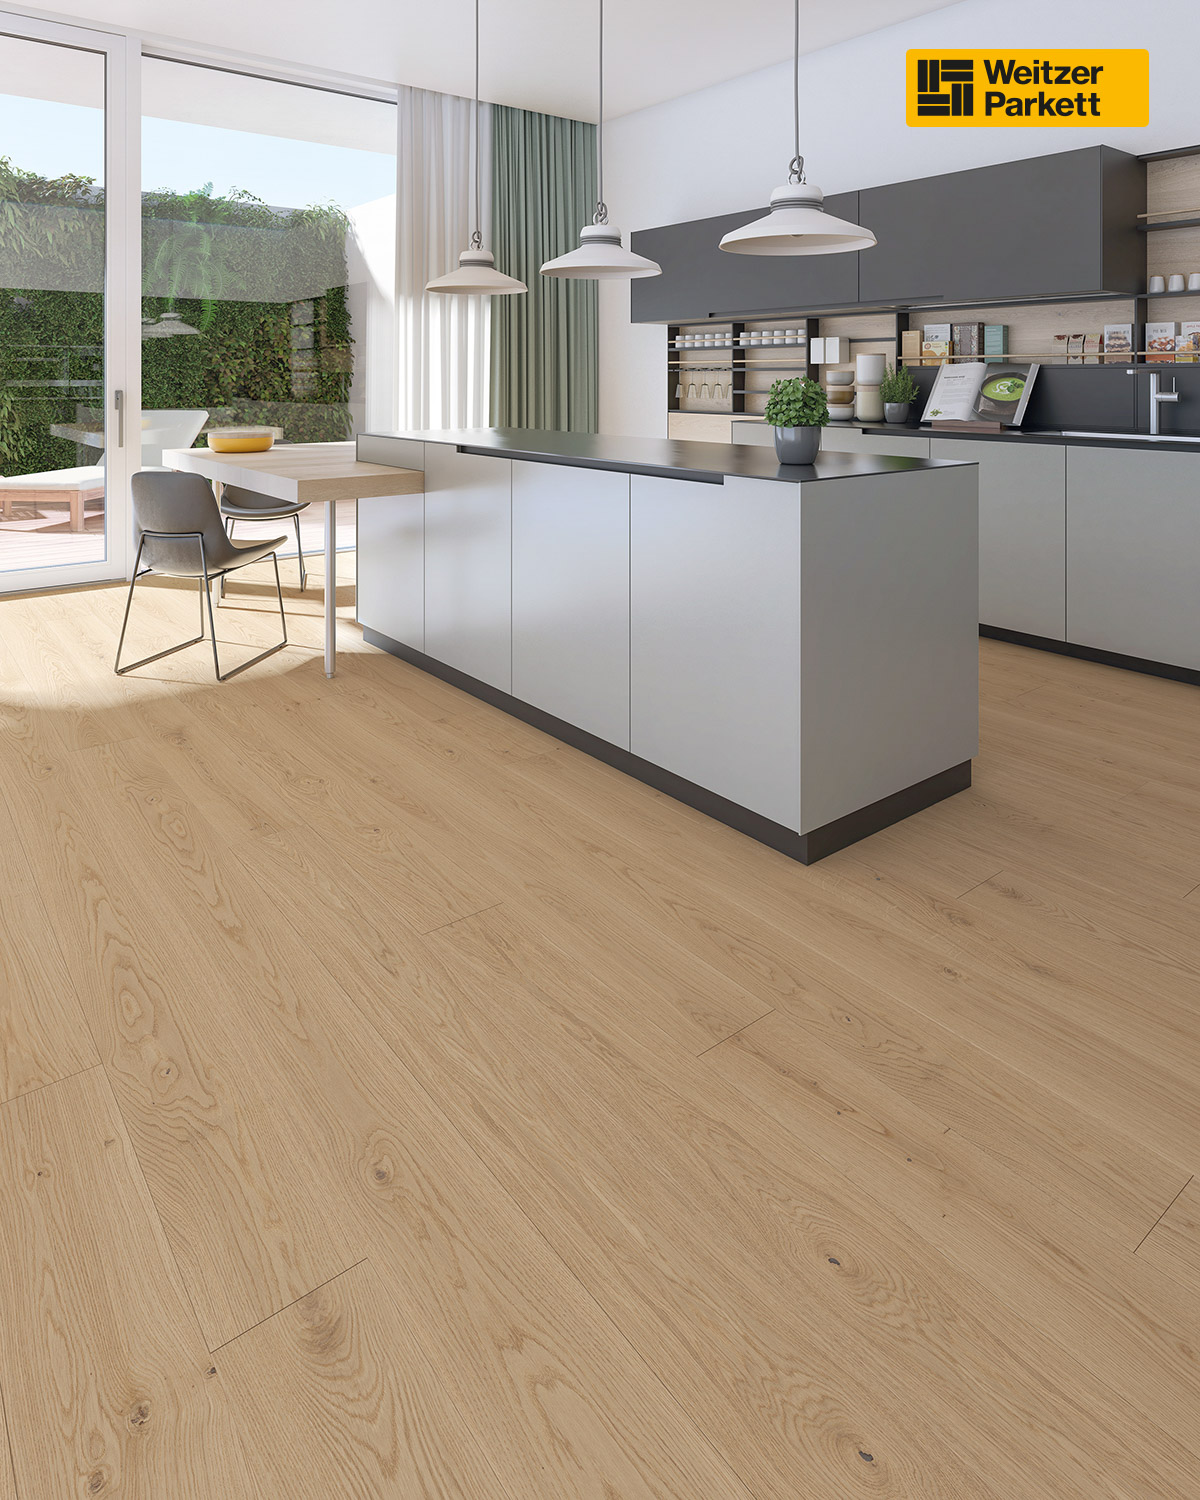 Plank-Appearance_WP_Charisma_EB_OAK_Pure_lively_kitchen_28118.jpg